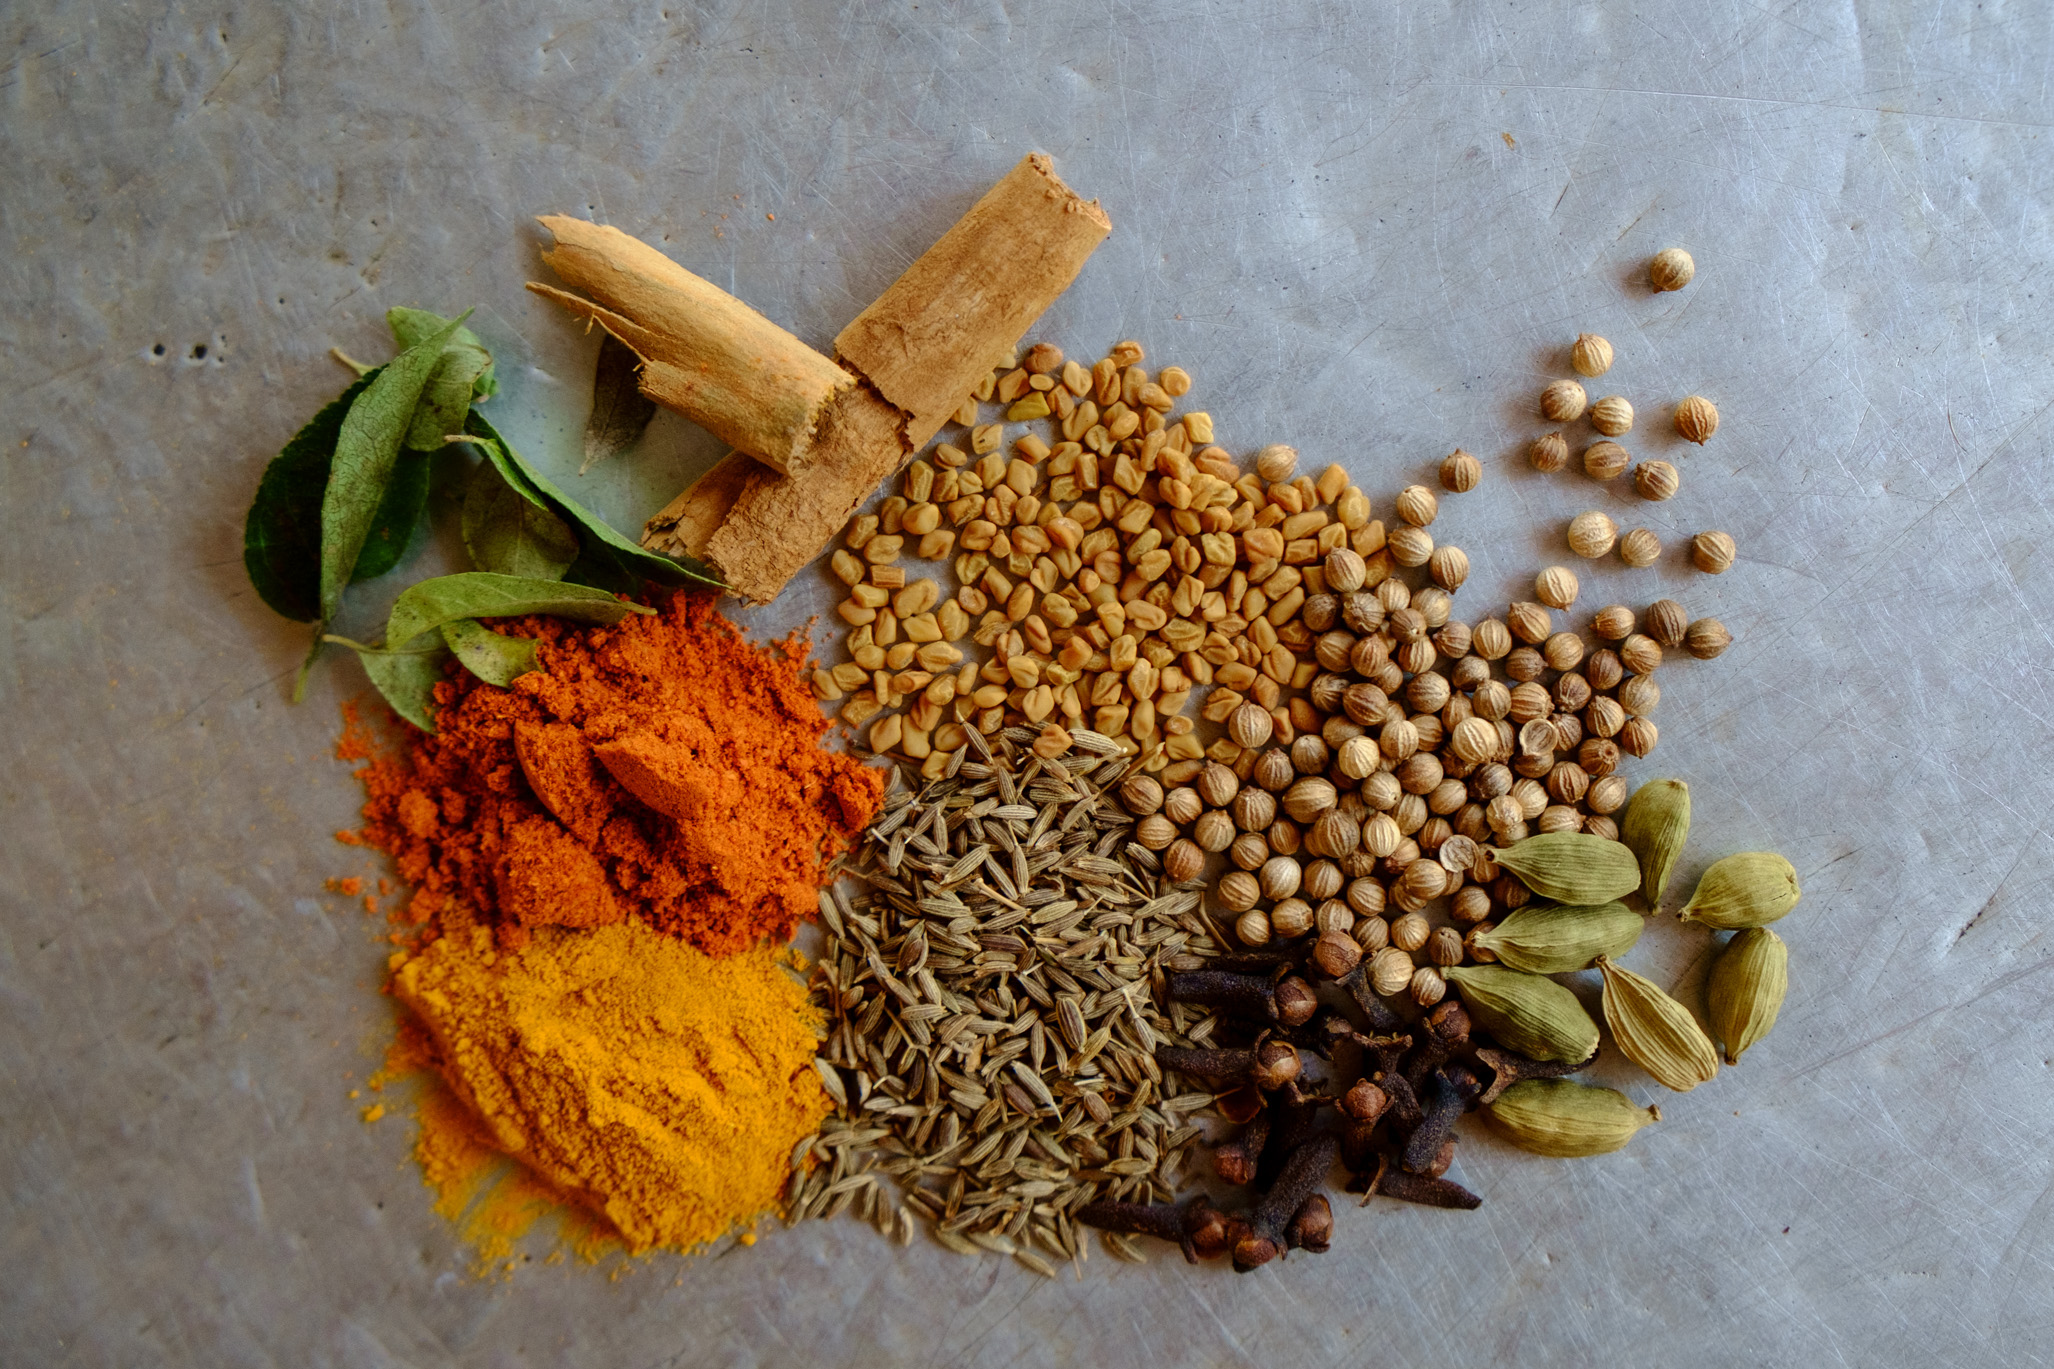 Ingredients for a good curry